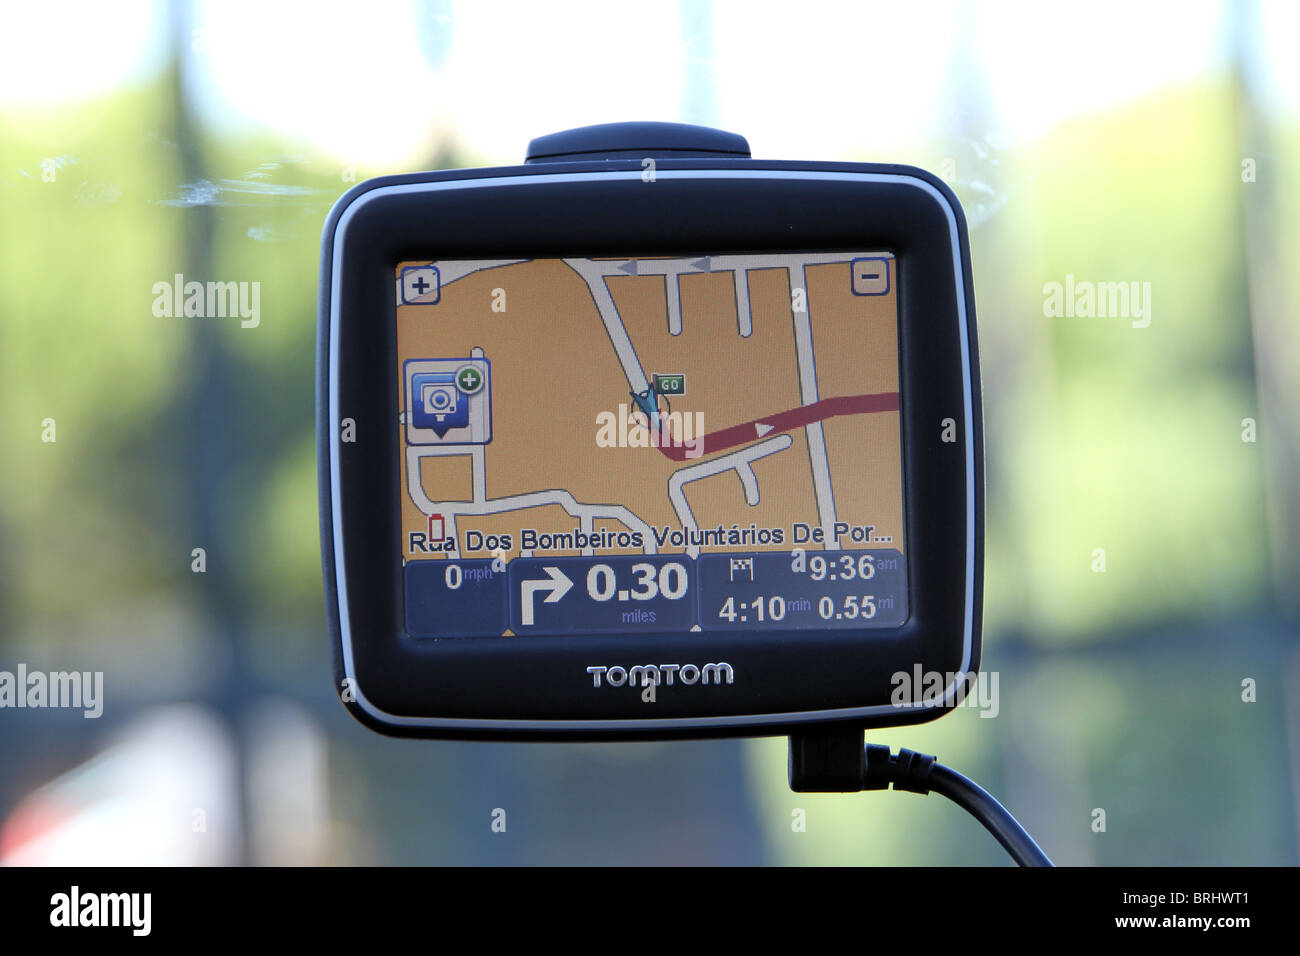 Satellite Navigation device in action and attached to a car windscreen - Stock Image